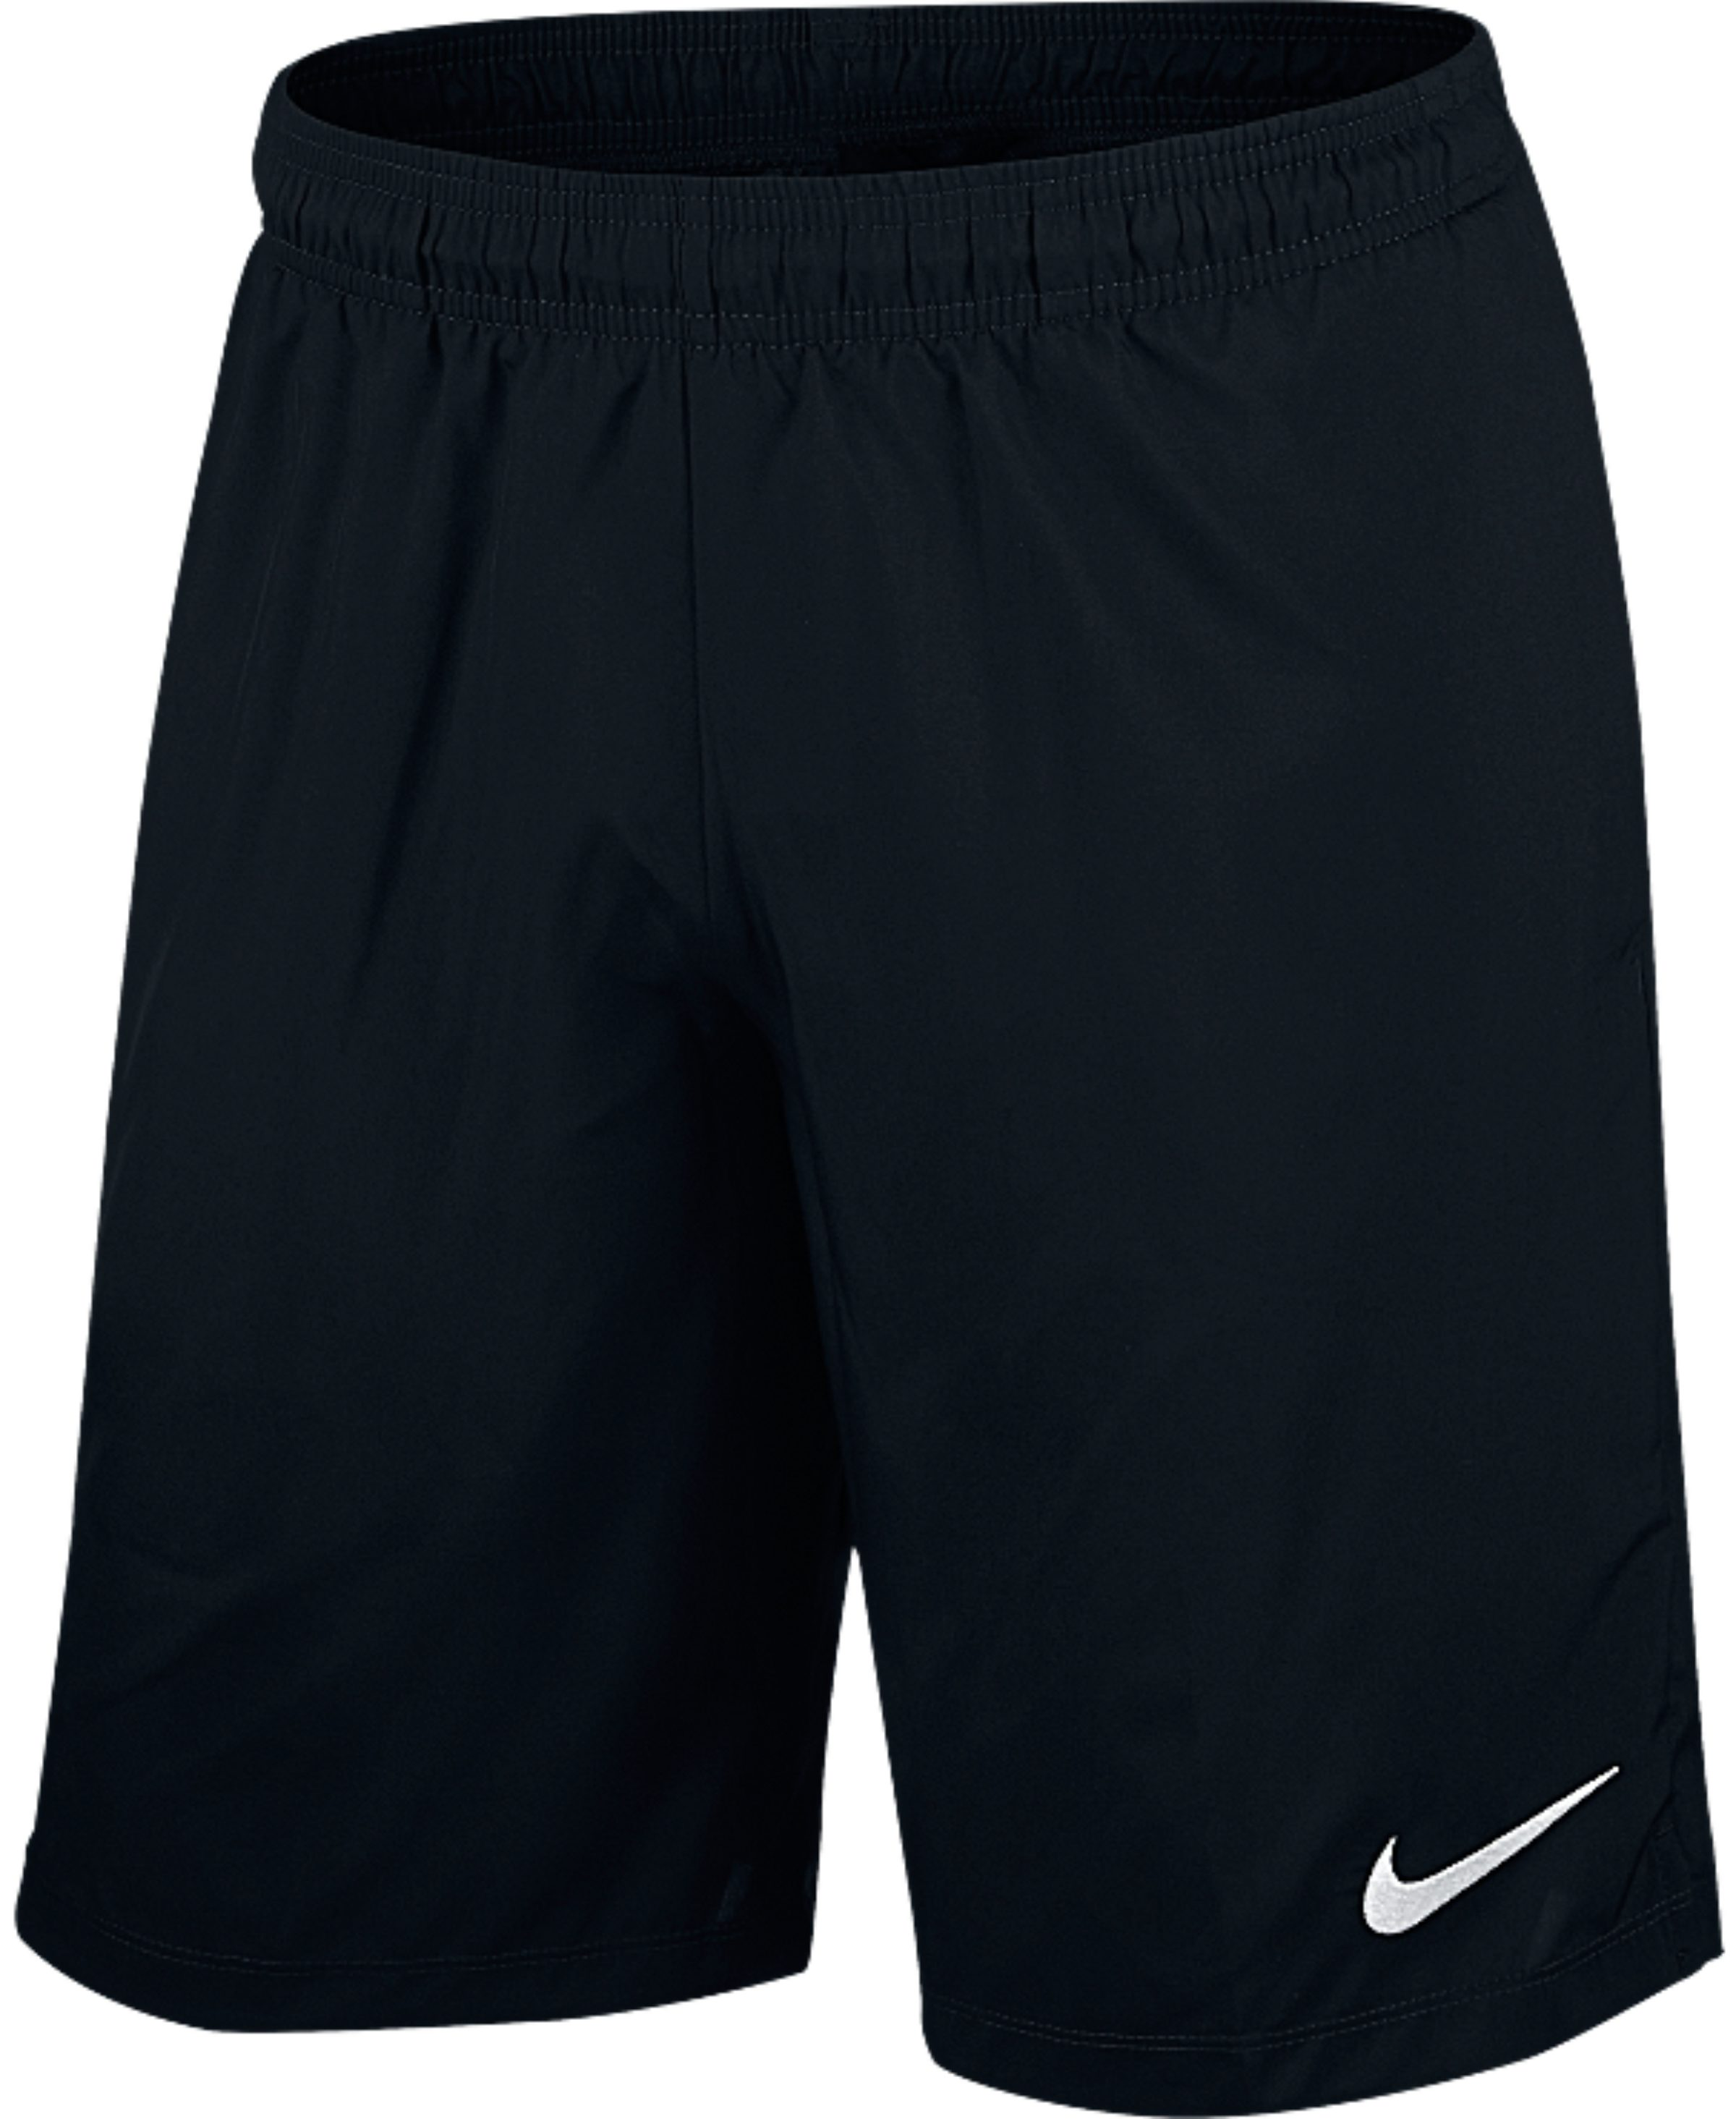 Easton Academy Sports Staff Shorts